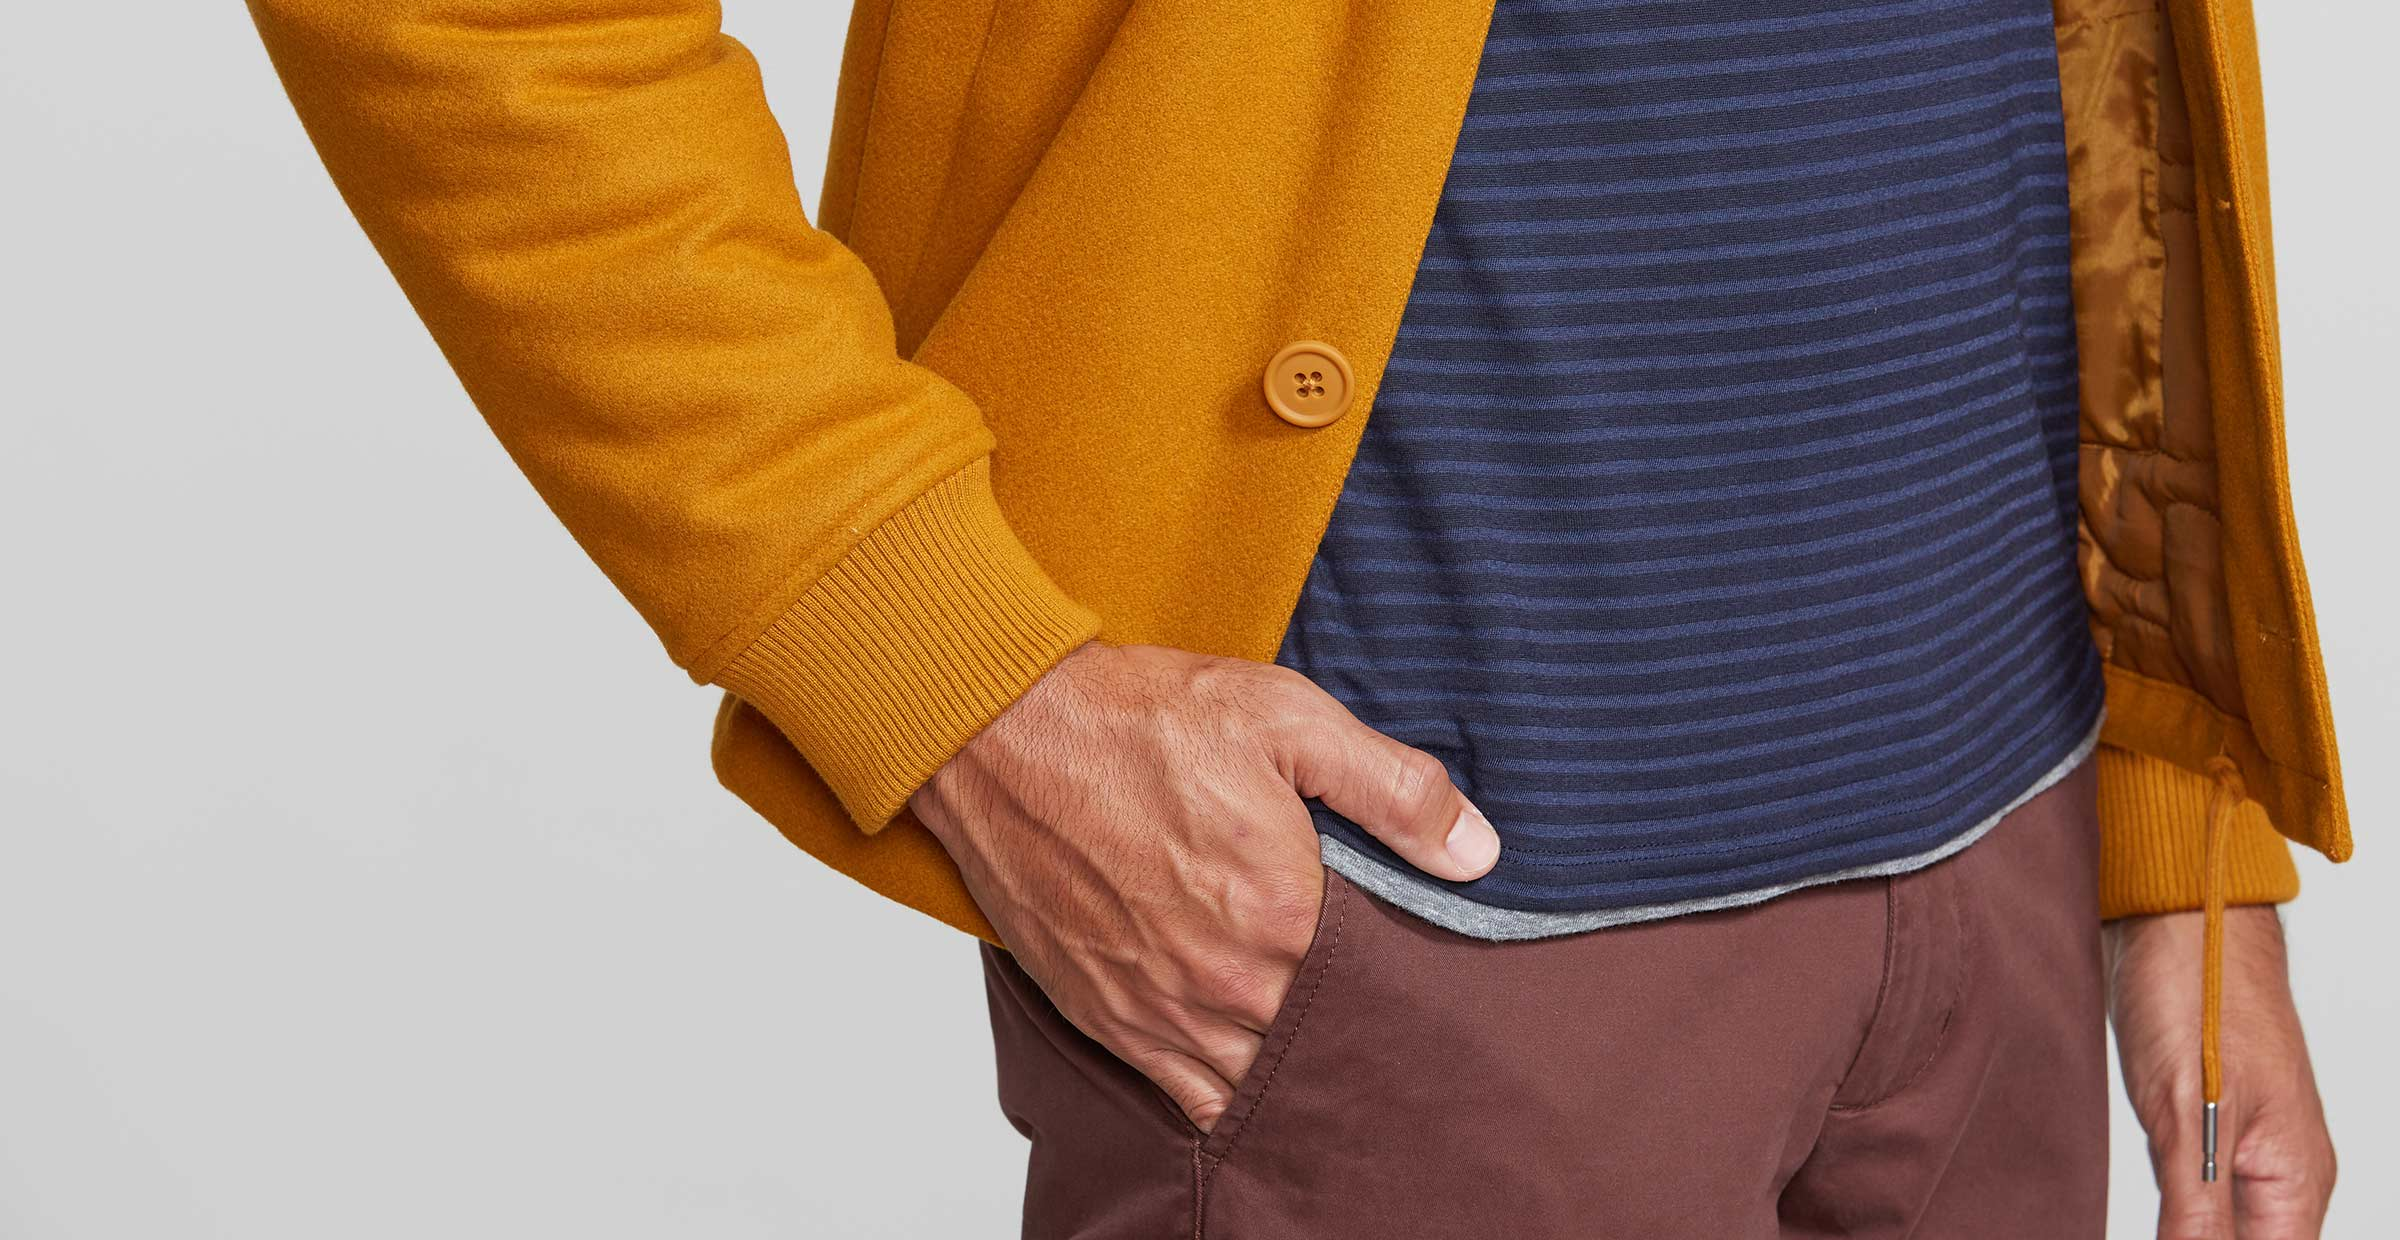 Detail shot of men's layered fall outfit